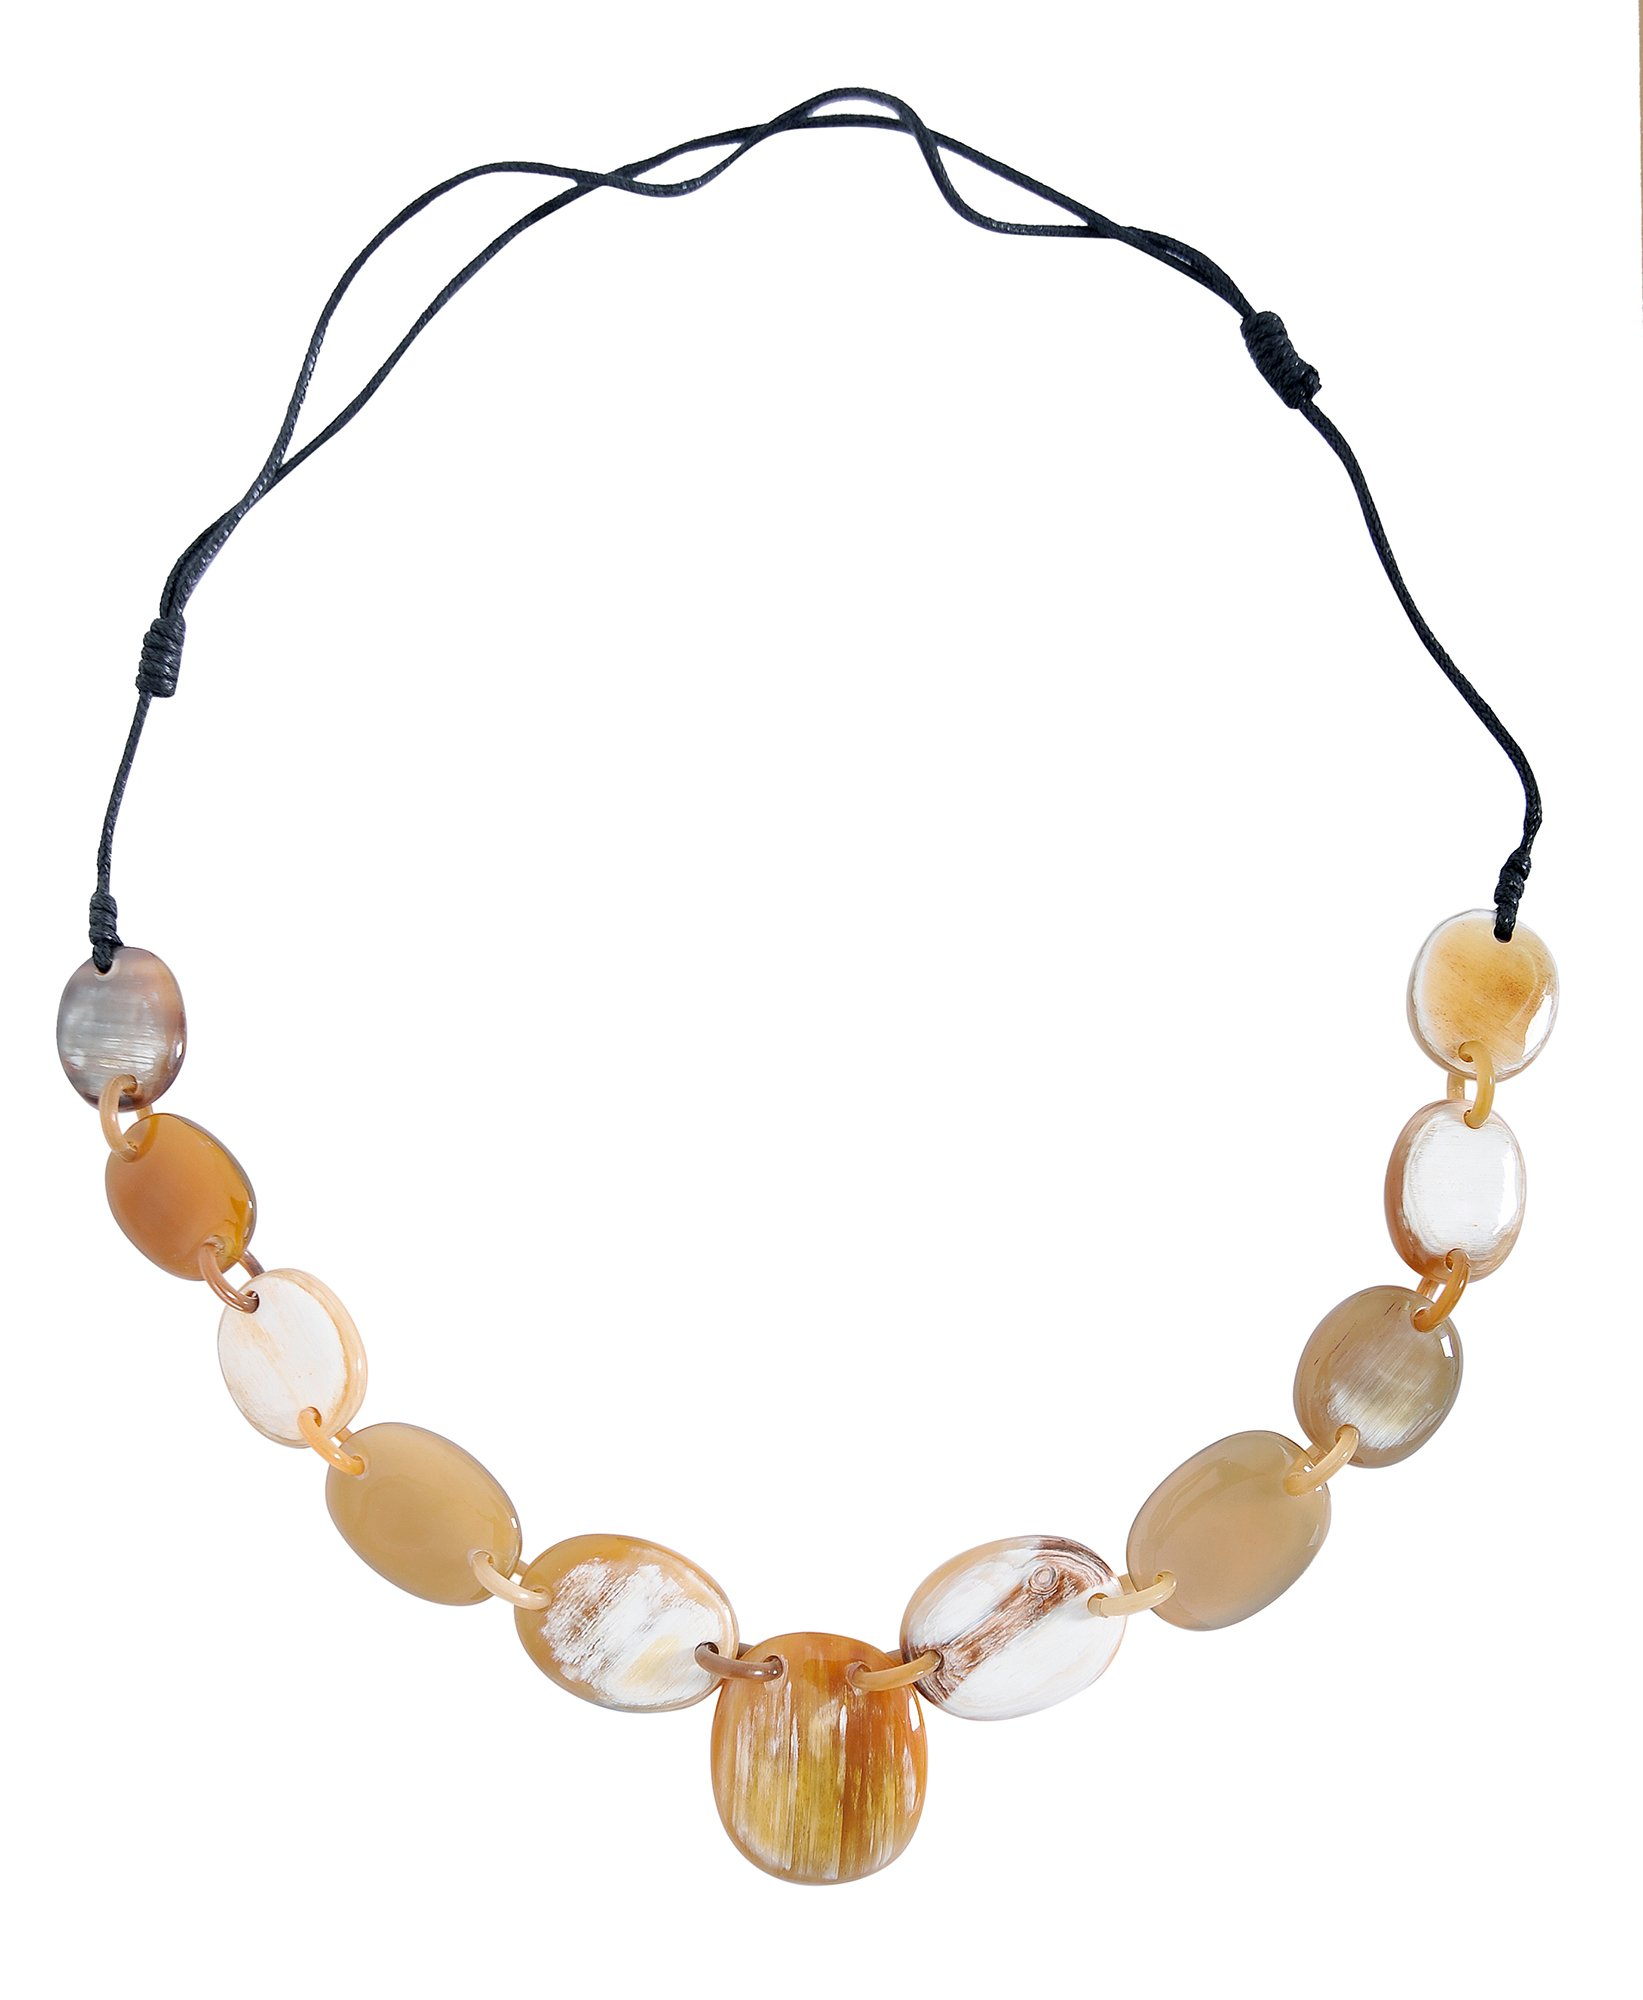 MaryCrafts Tribal Bib Style Organic Buffalo Horn Necklace Adjustable Natural Color